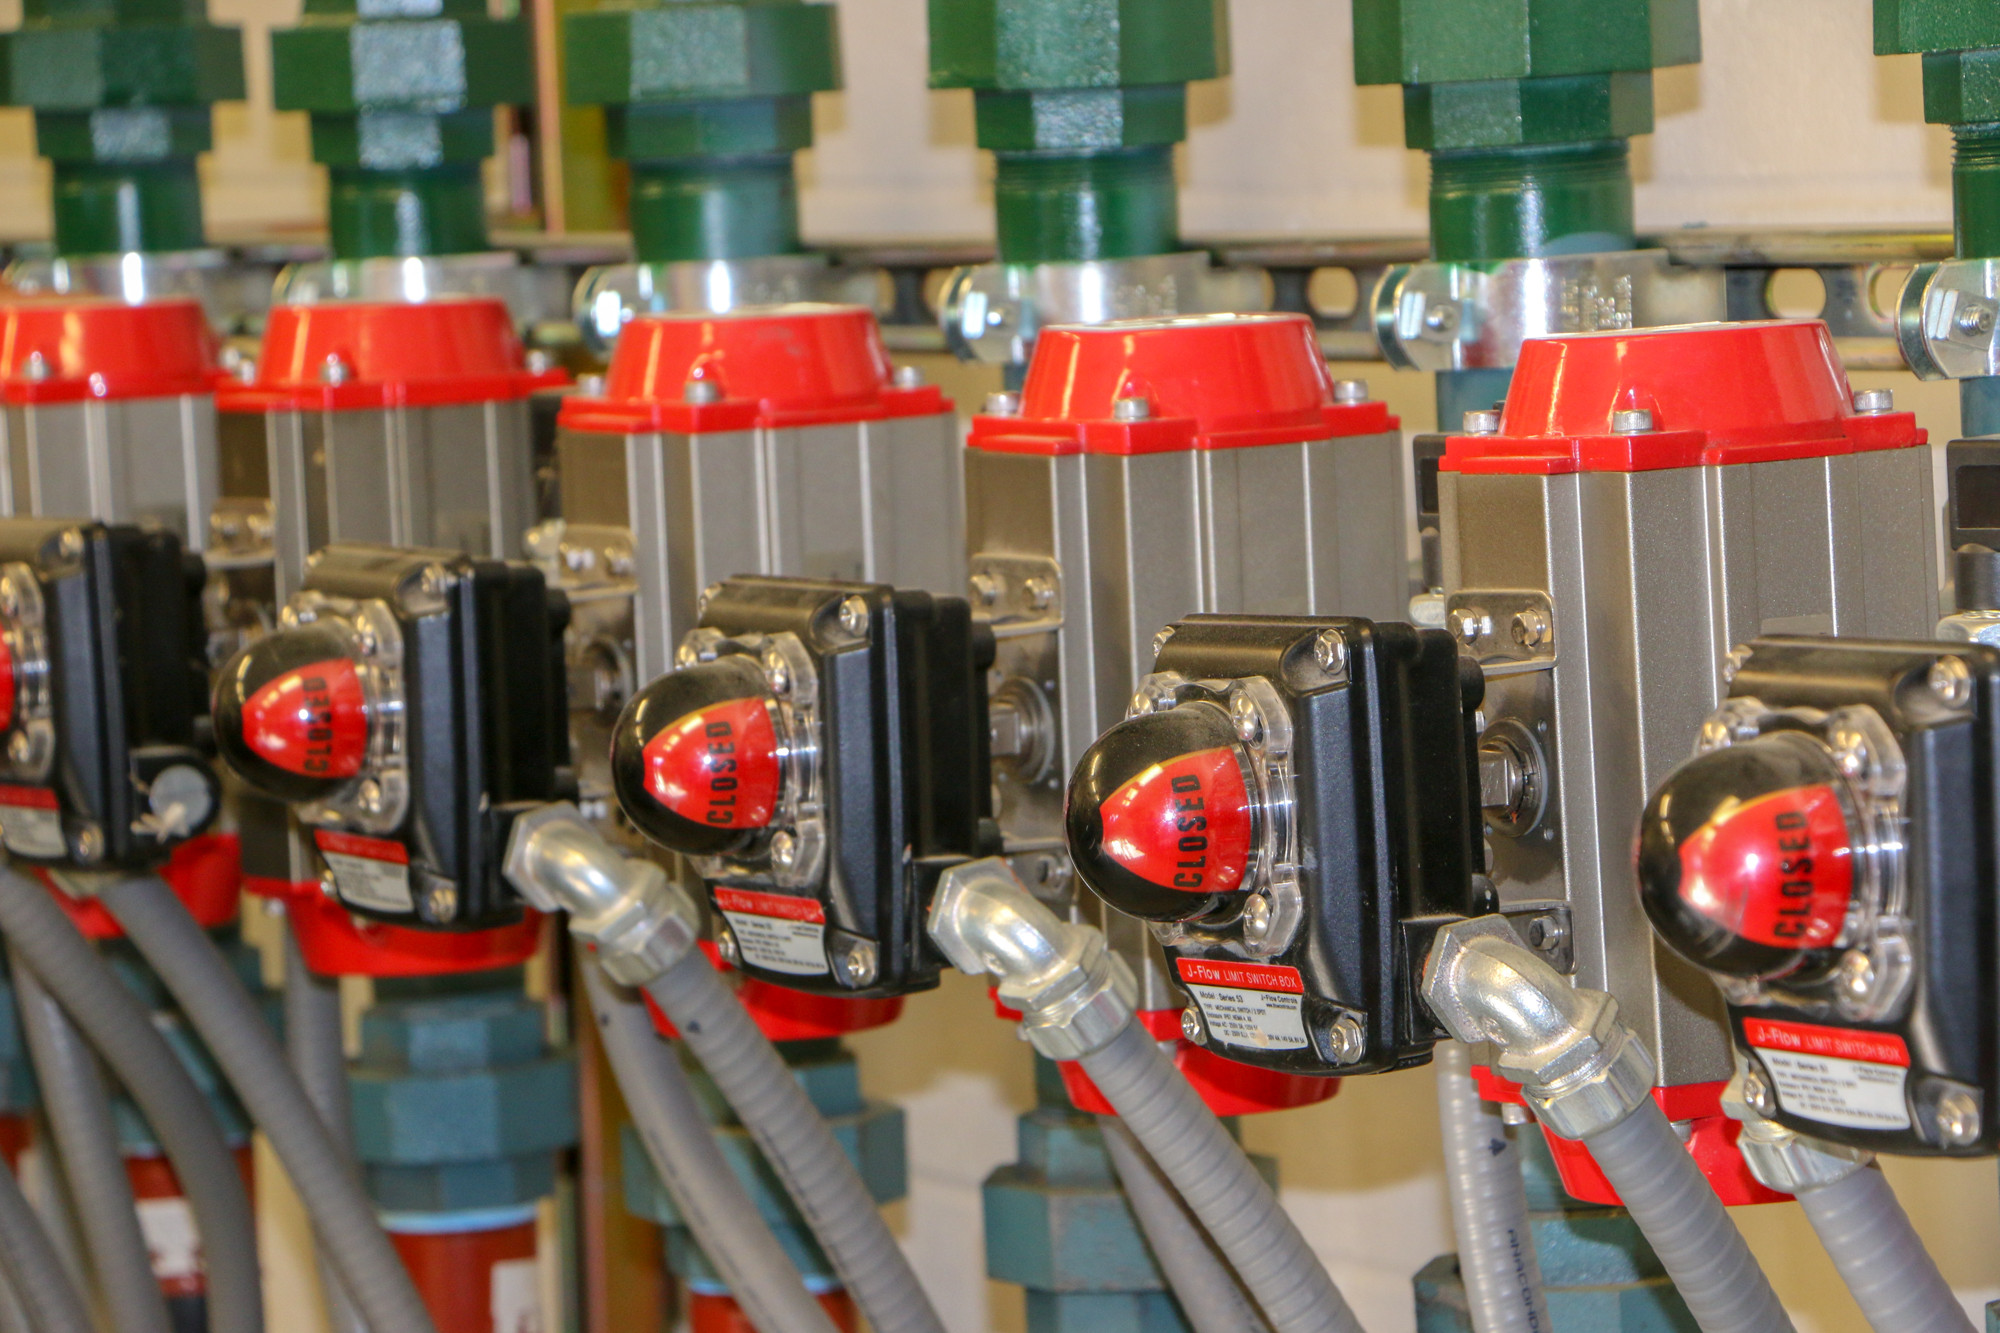 The switches for the compressed air that is used for cleaning out the filters in the pipeline.